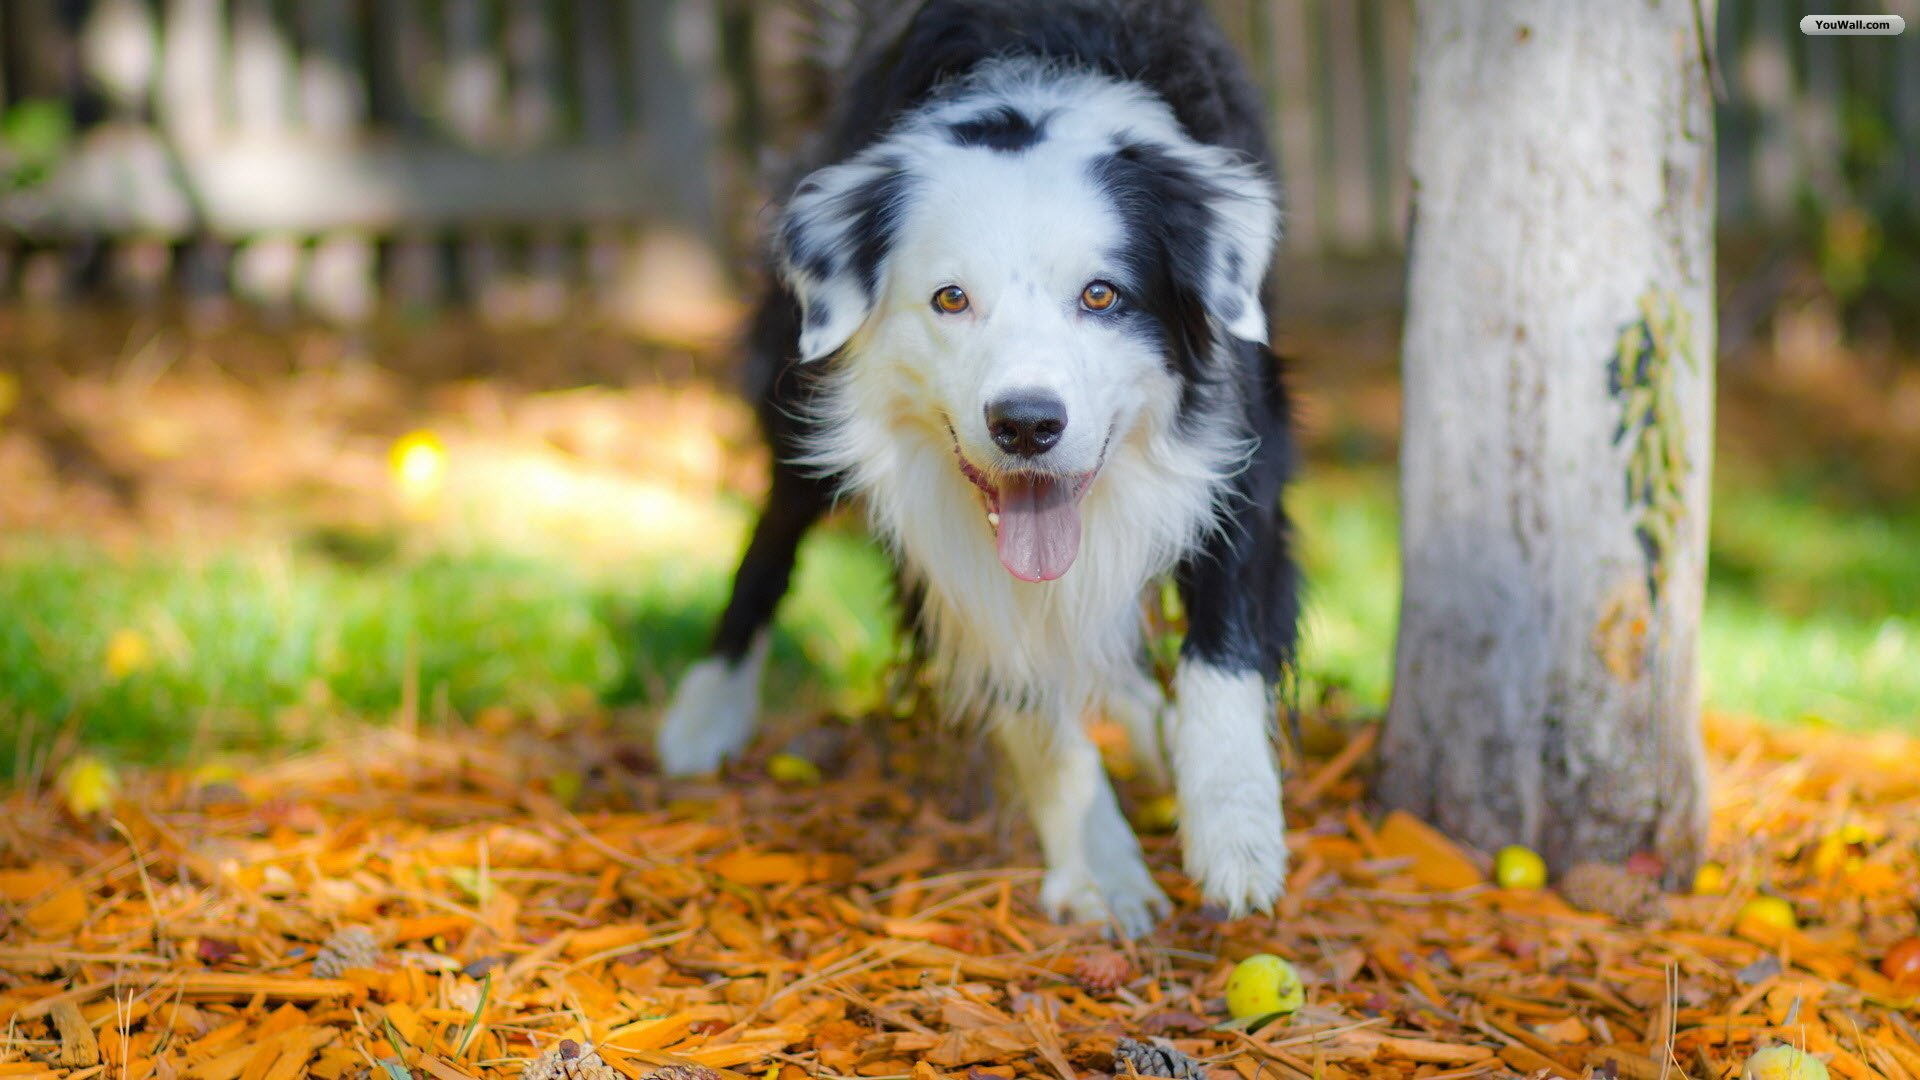 Cute-dog-for-free-download-about-wallpaper-wpc5803830